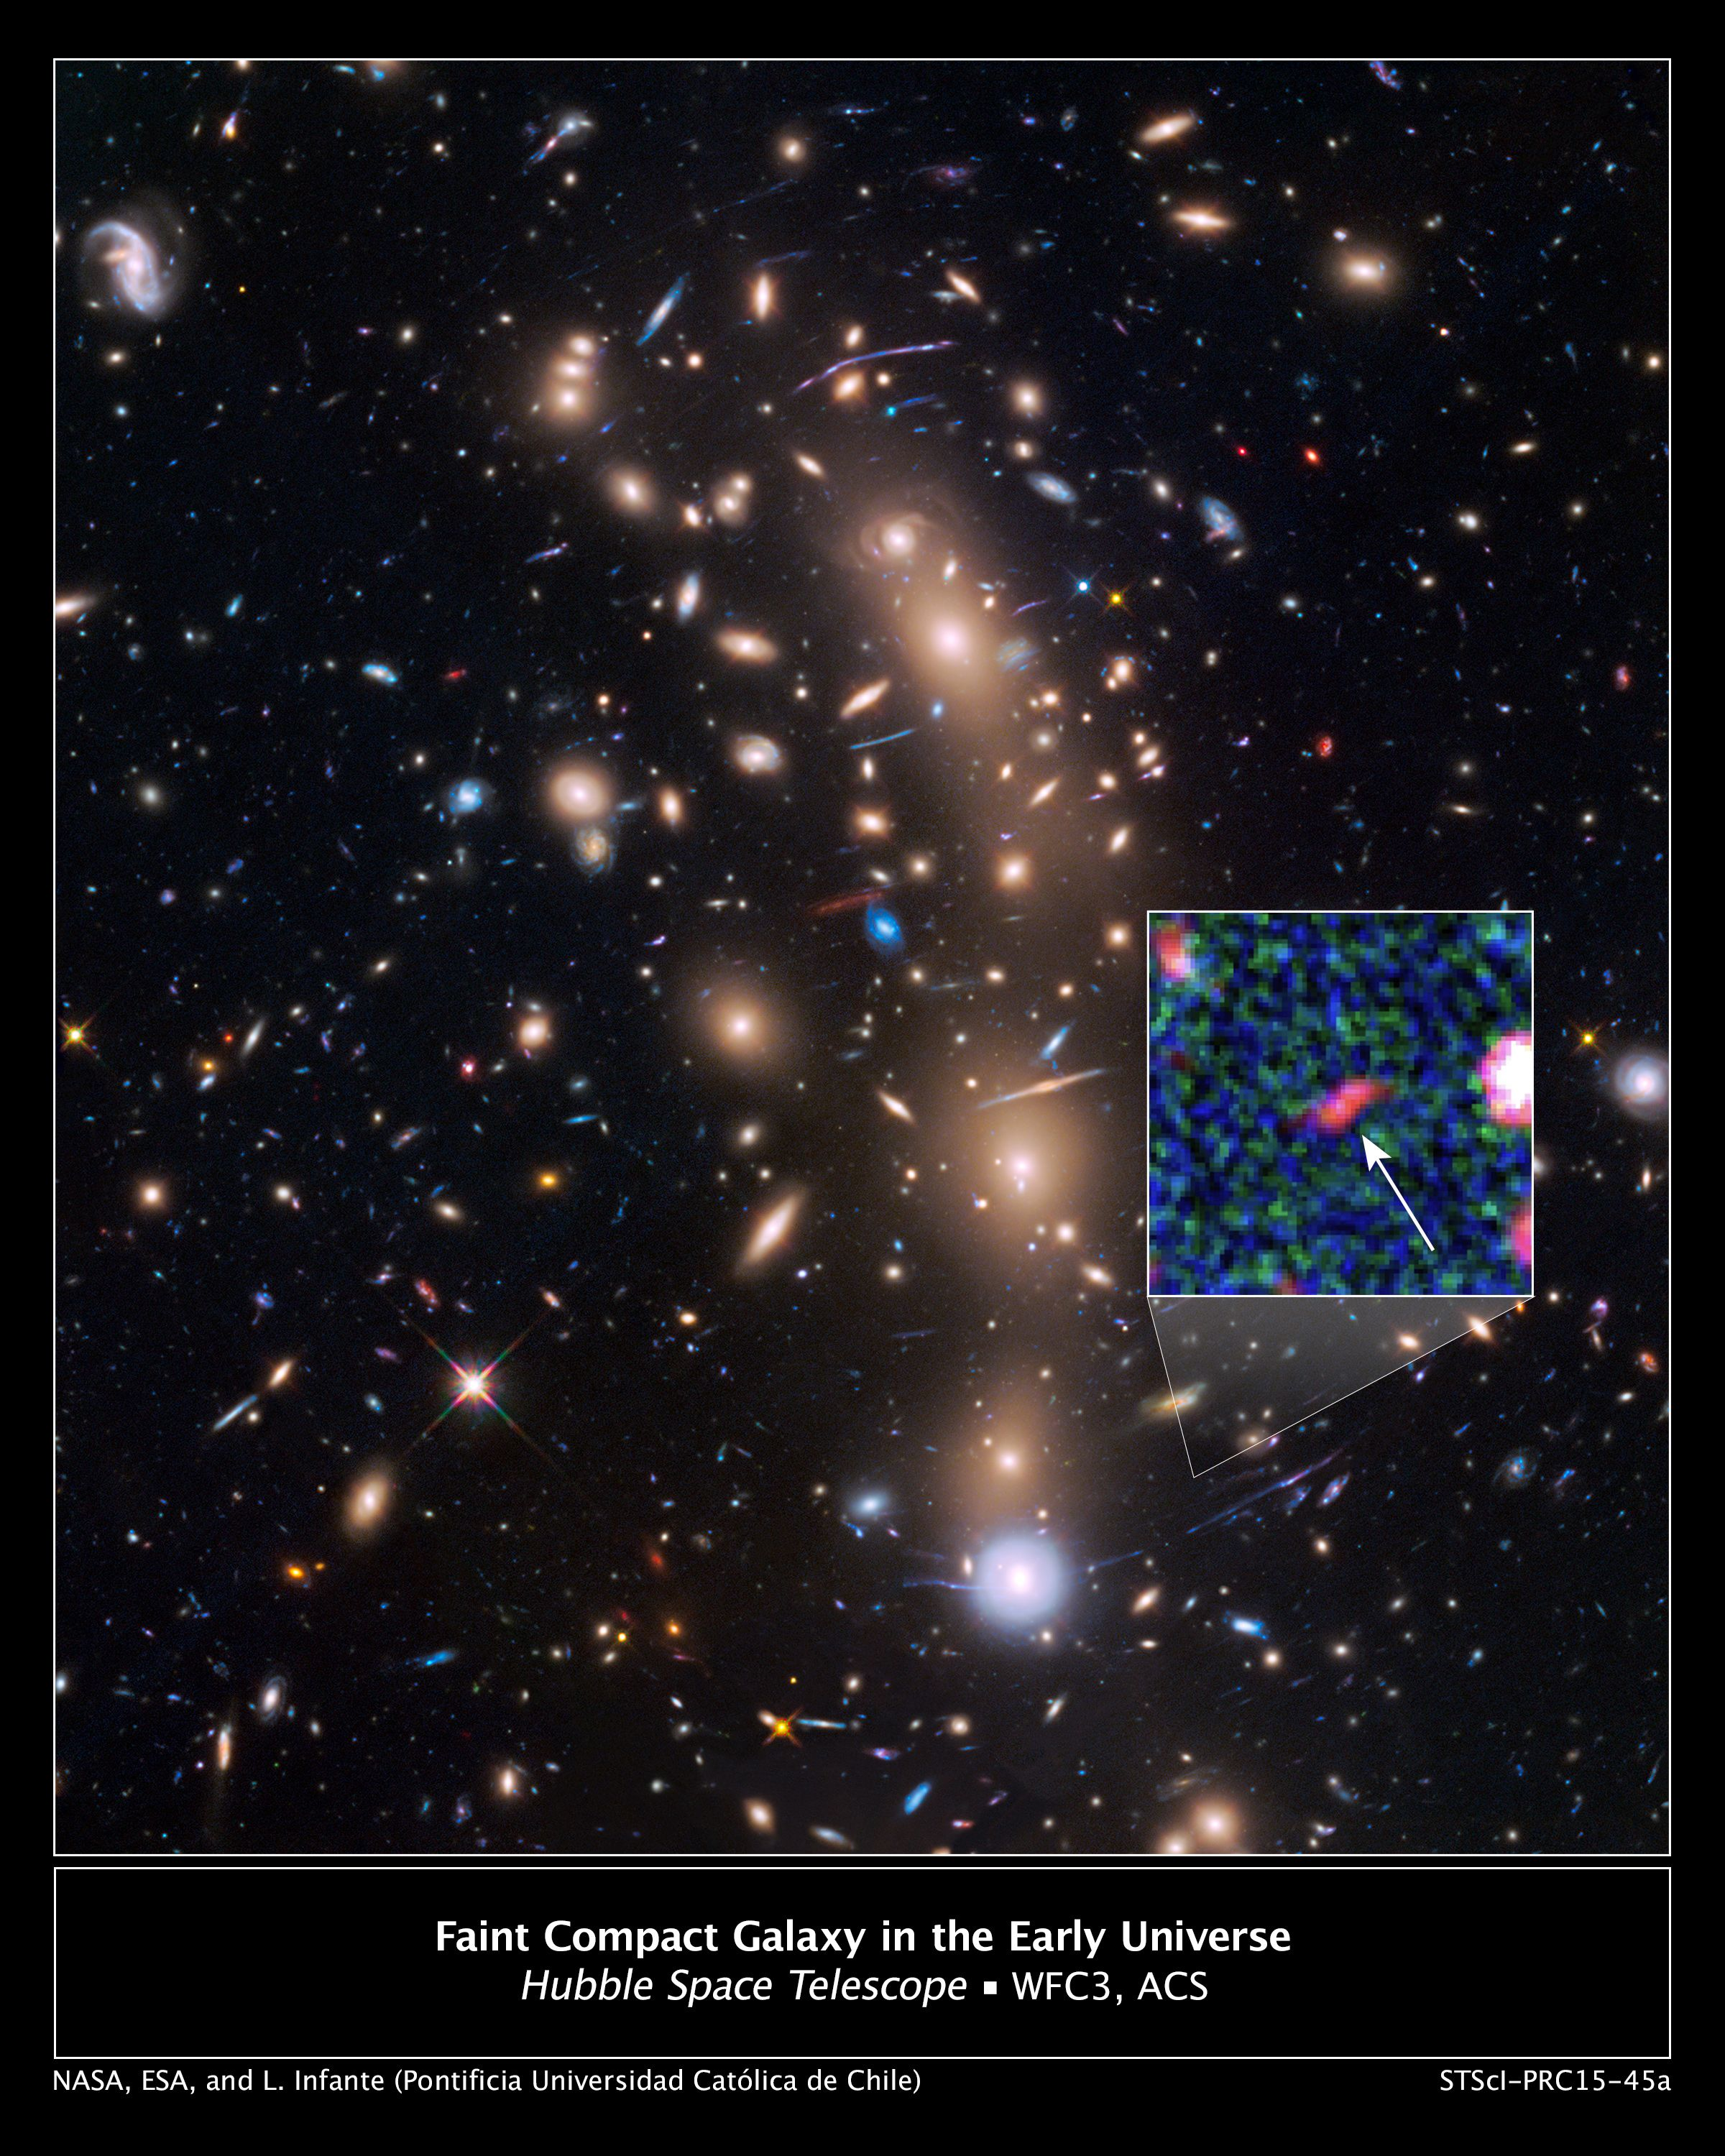 Magnified Image Of The Faintest Galaxy From The Early Universe